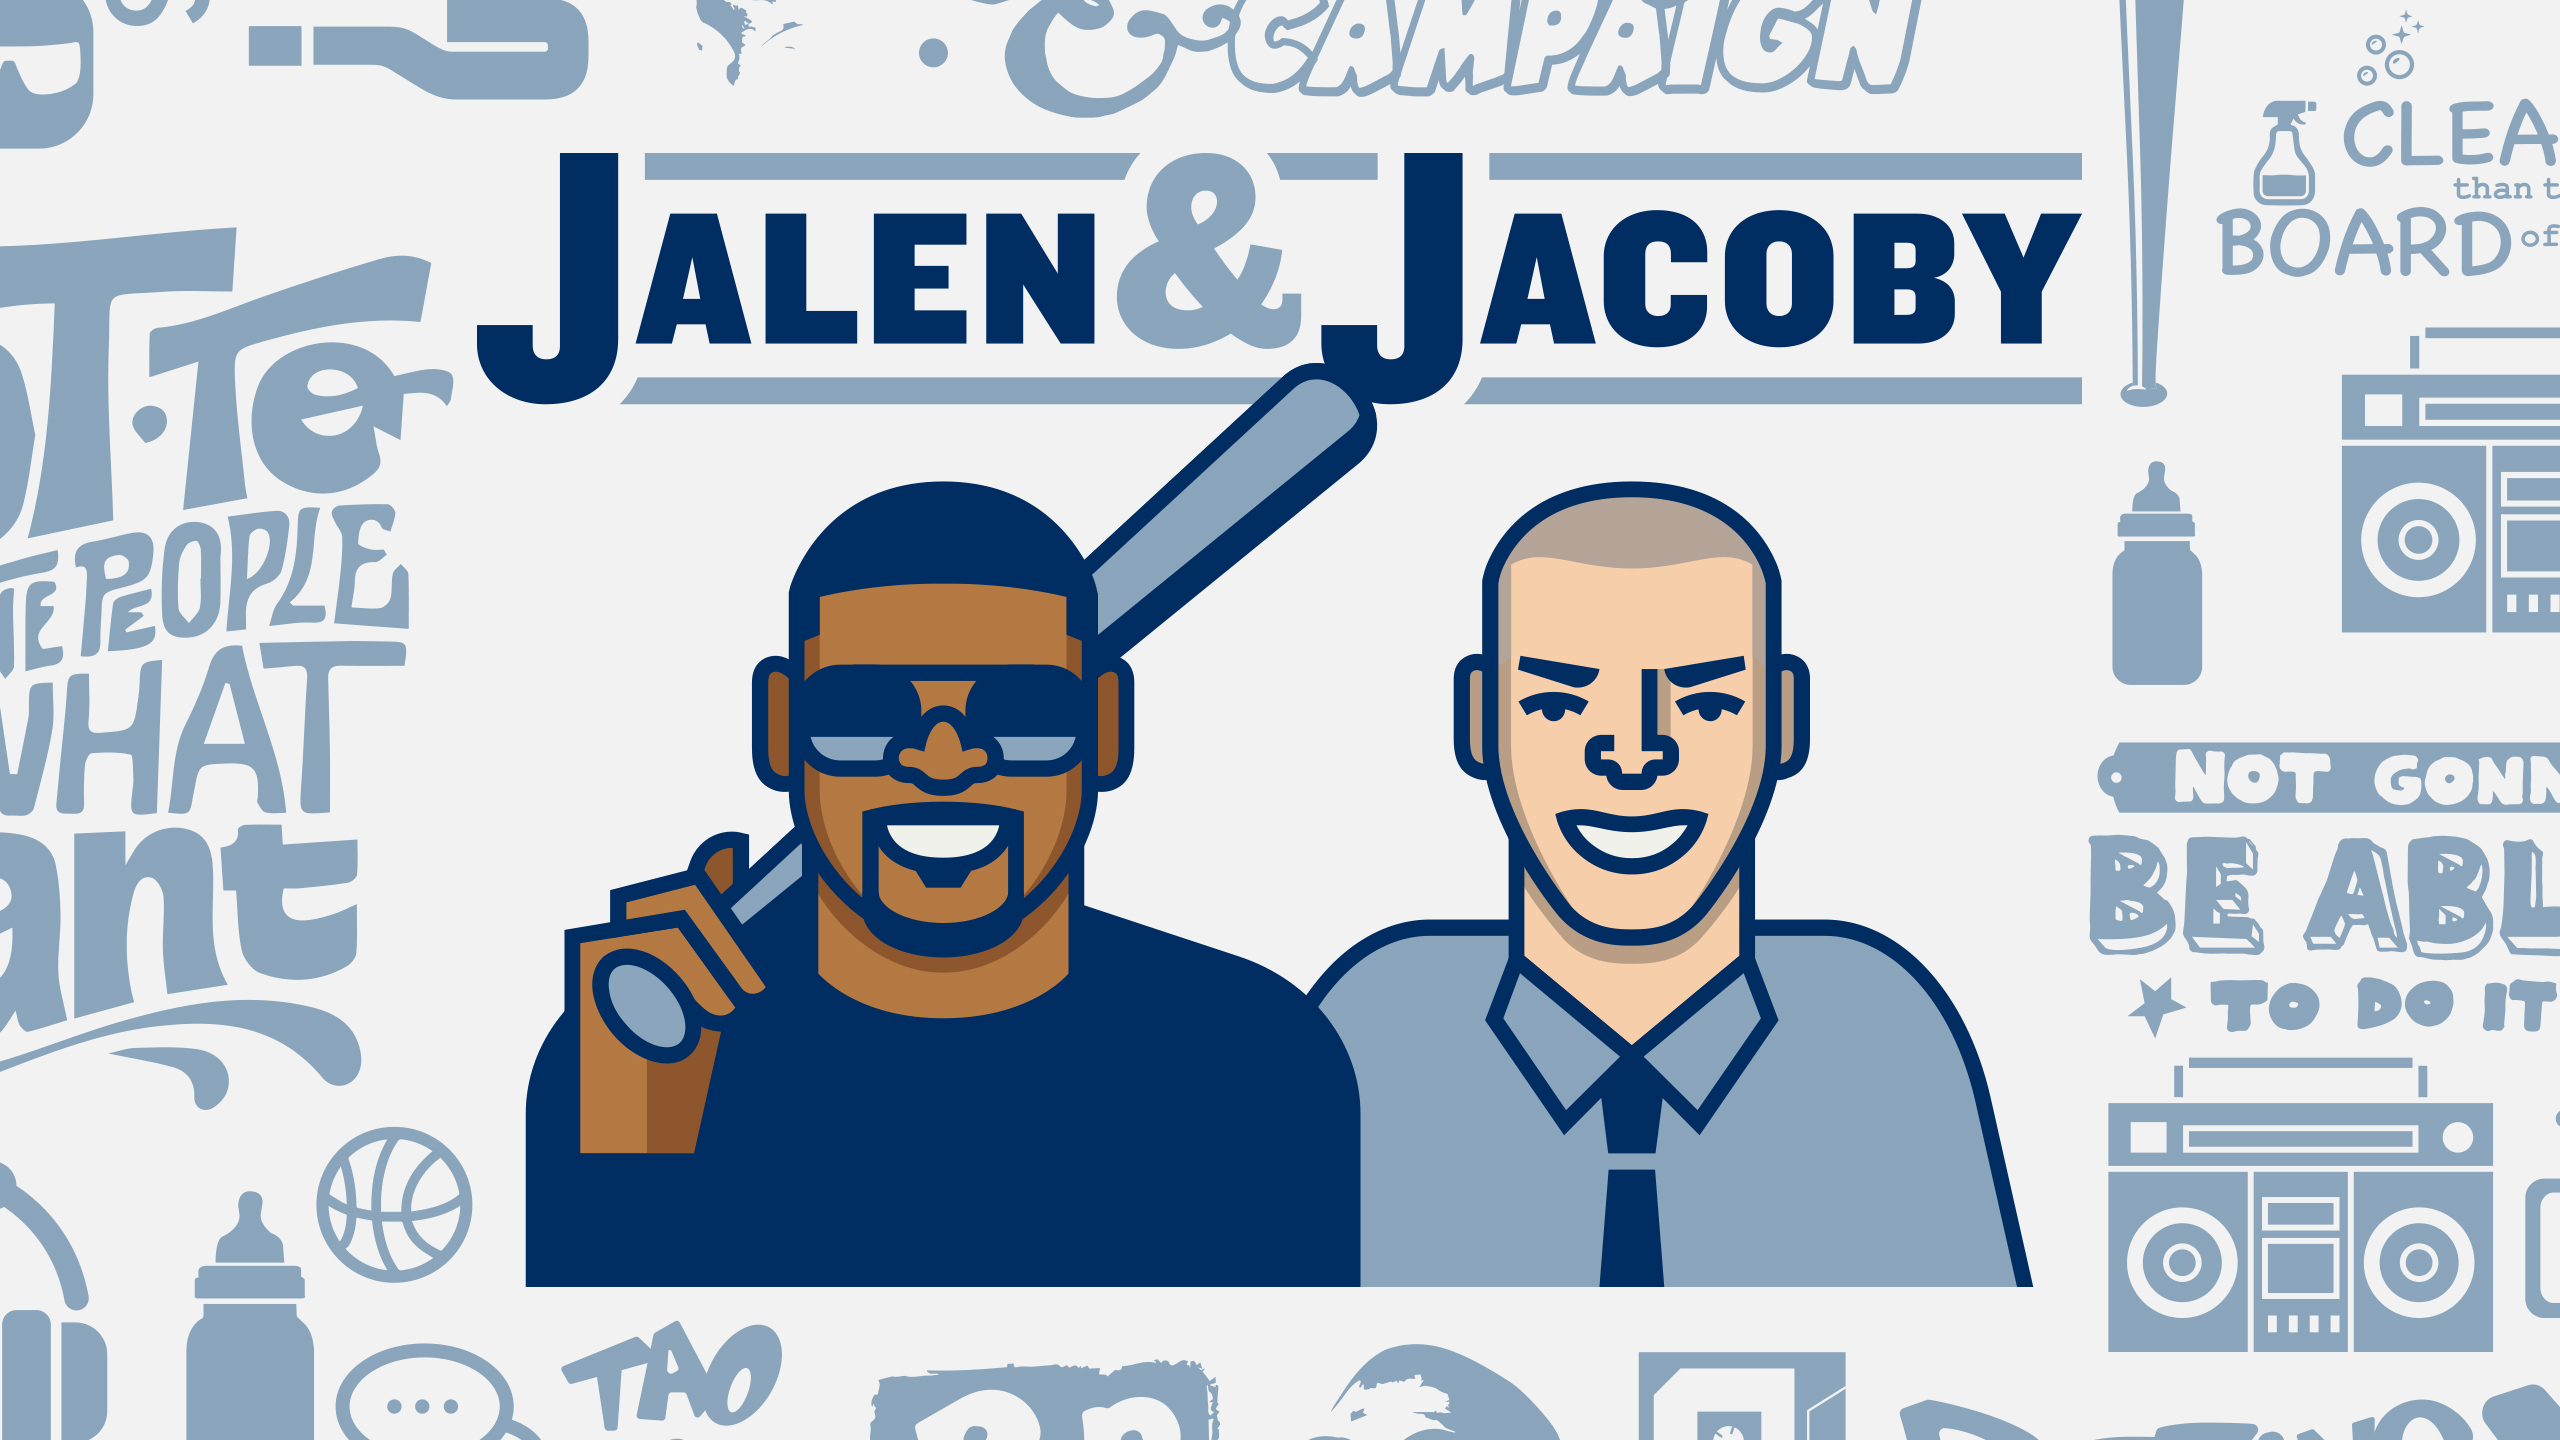 Thu, 10/18 - Jalen & Jacoby